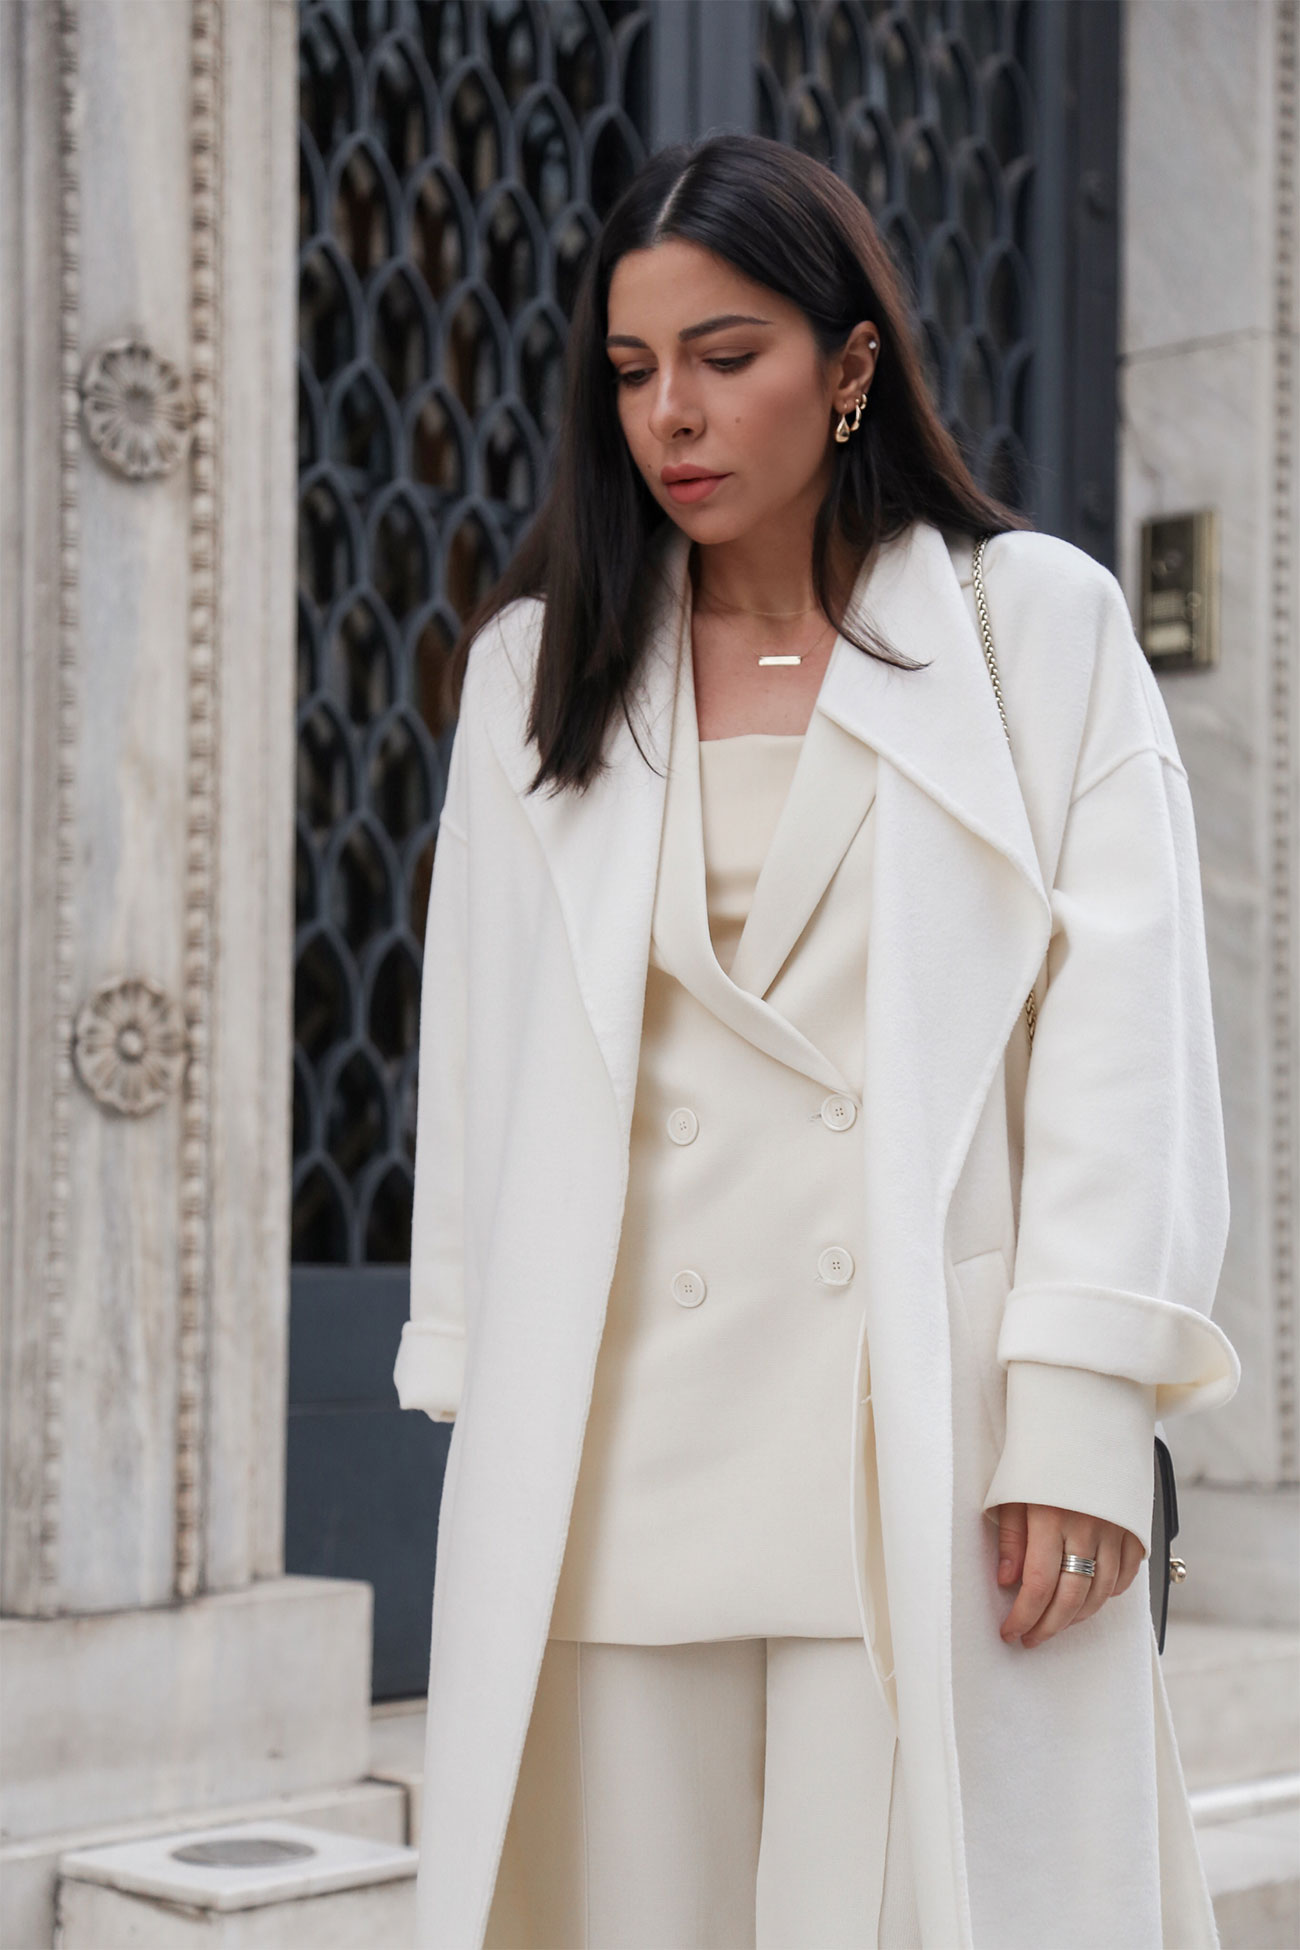 A perfectly layered total white look by Stella Asteria - wearing head-to-toe white outfit with white pantsuit, white wool coat and a faux leather top in the same color